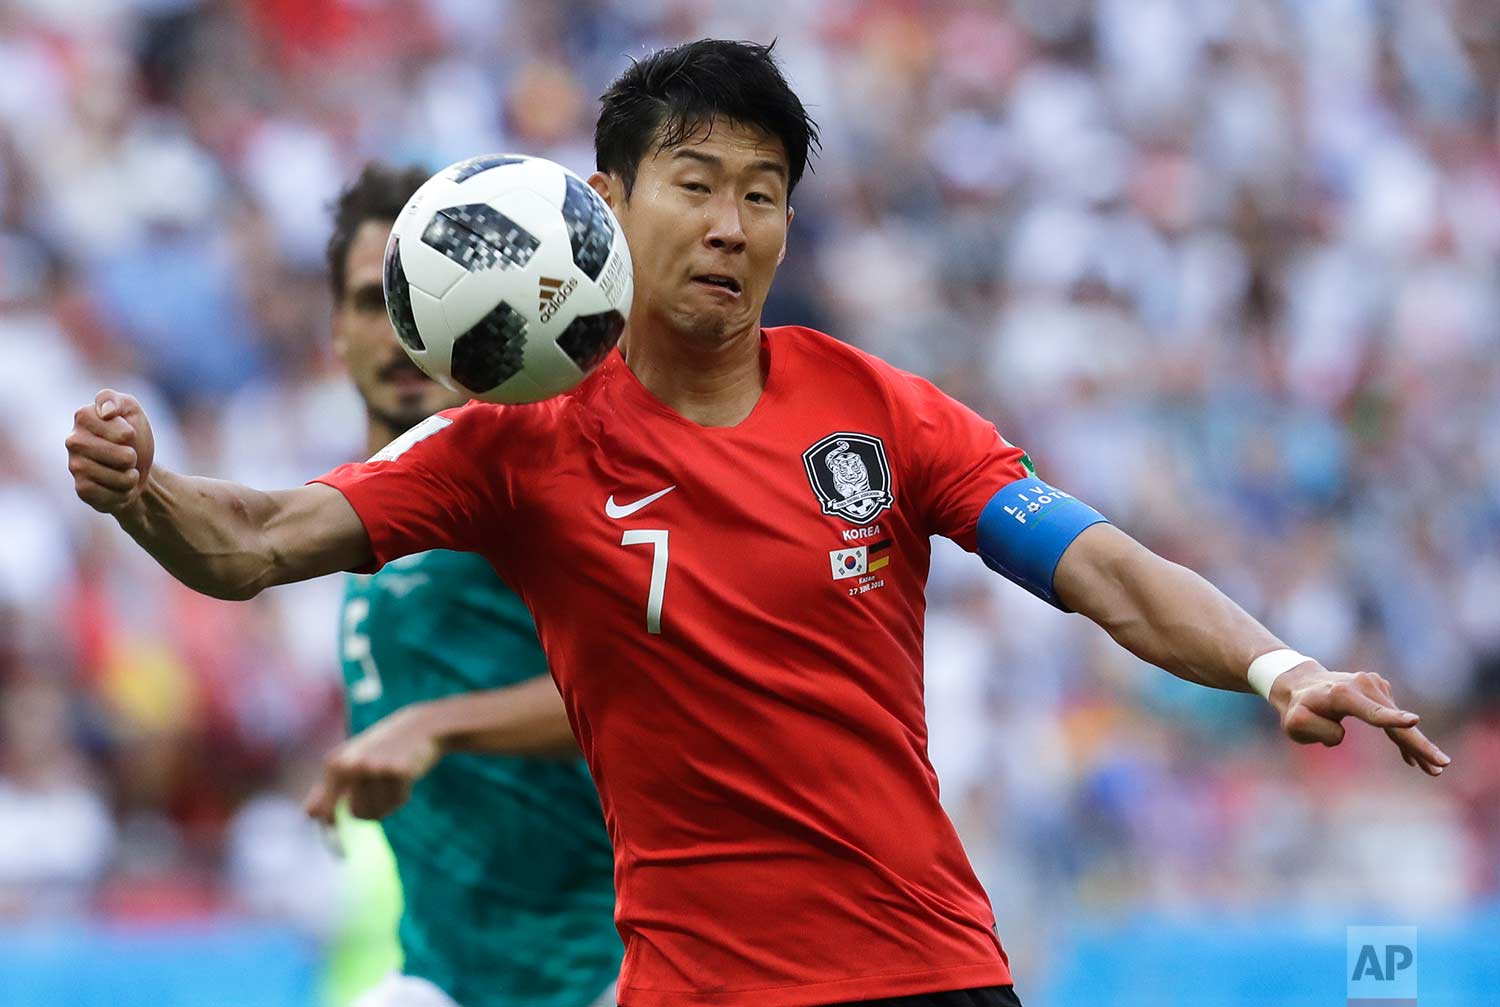 South Korea's Son Heung-min controls a ball during the group F match between South Korea and Germany, at the 2018 soccer World Cup in the Kazan Arena in Kazan, Russia, Wednesday, June 27, 2018. (AP Photo/Michael Probst)